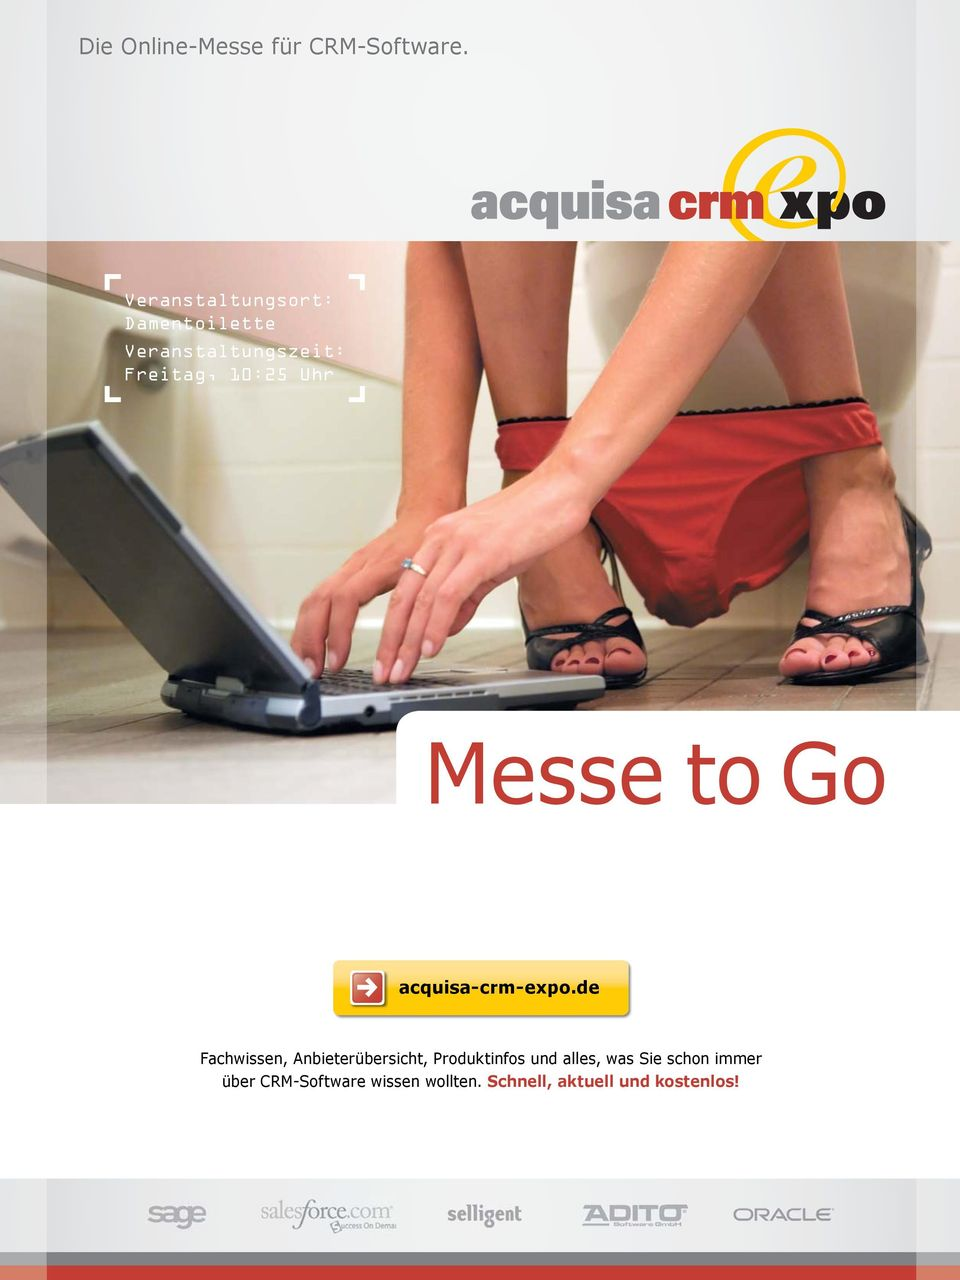 Uhr Messe to Go, acquisa-crm-expo.